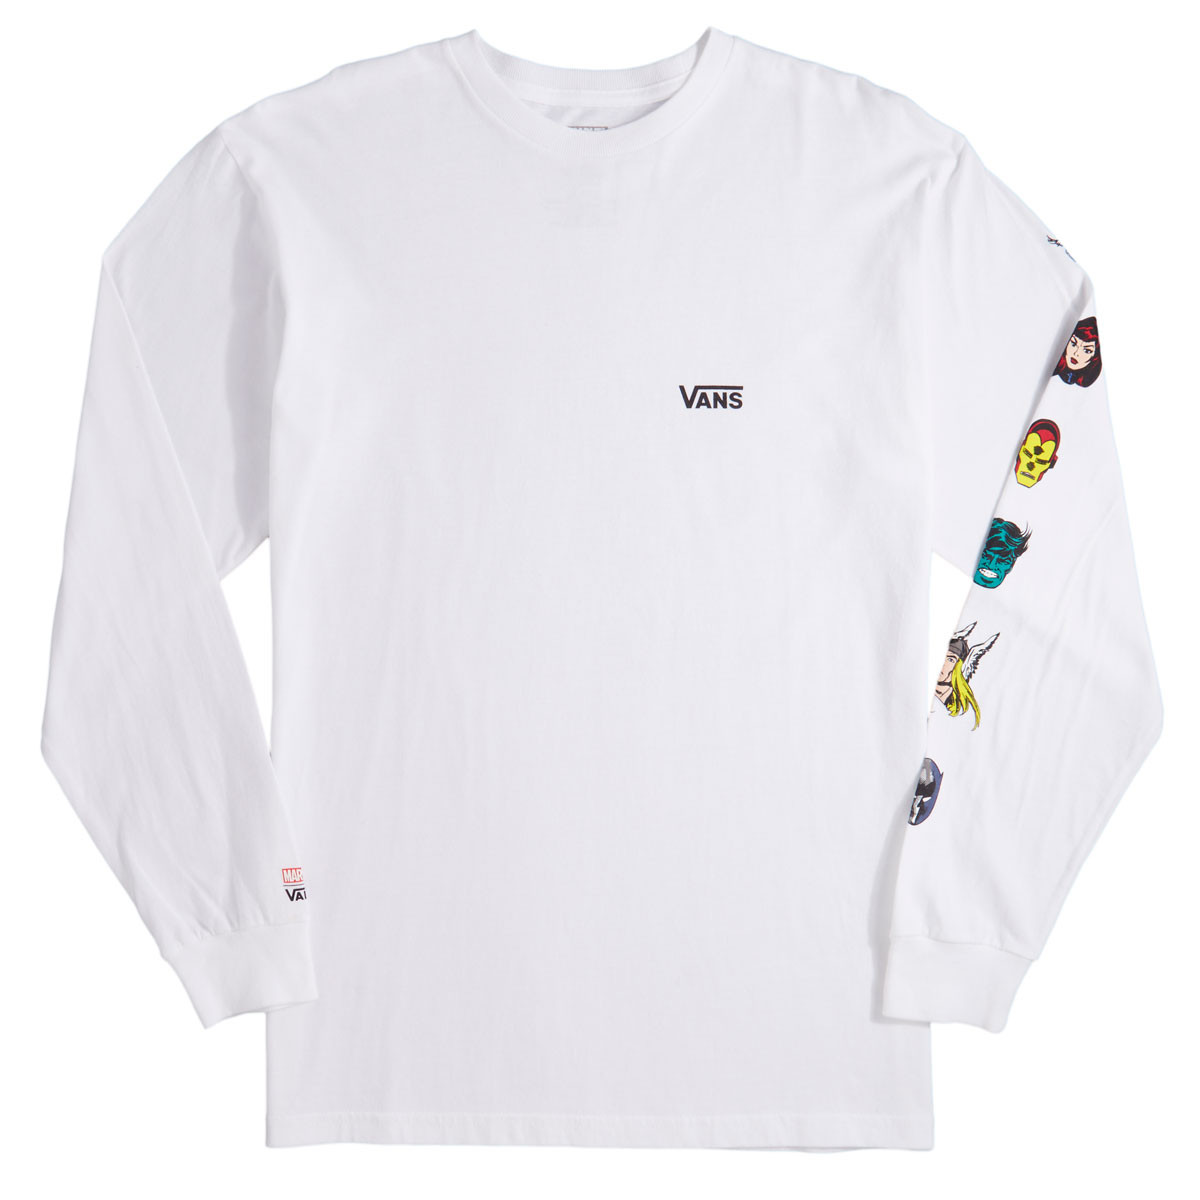 Vans x Marvel Characters Long Sleeve T-Shirt - White